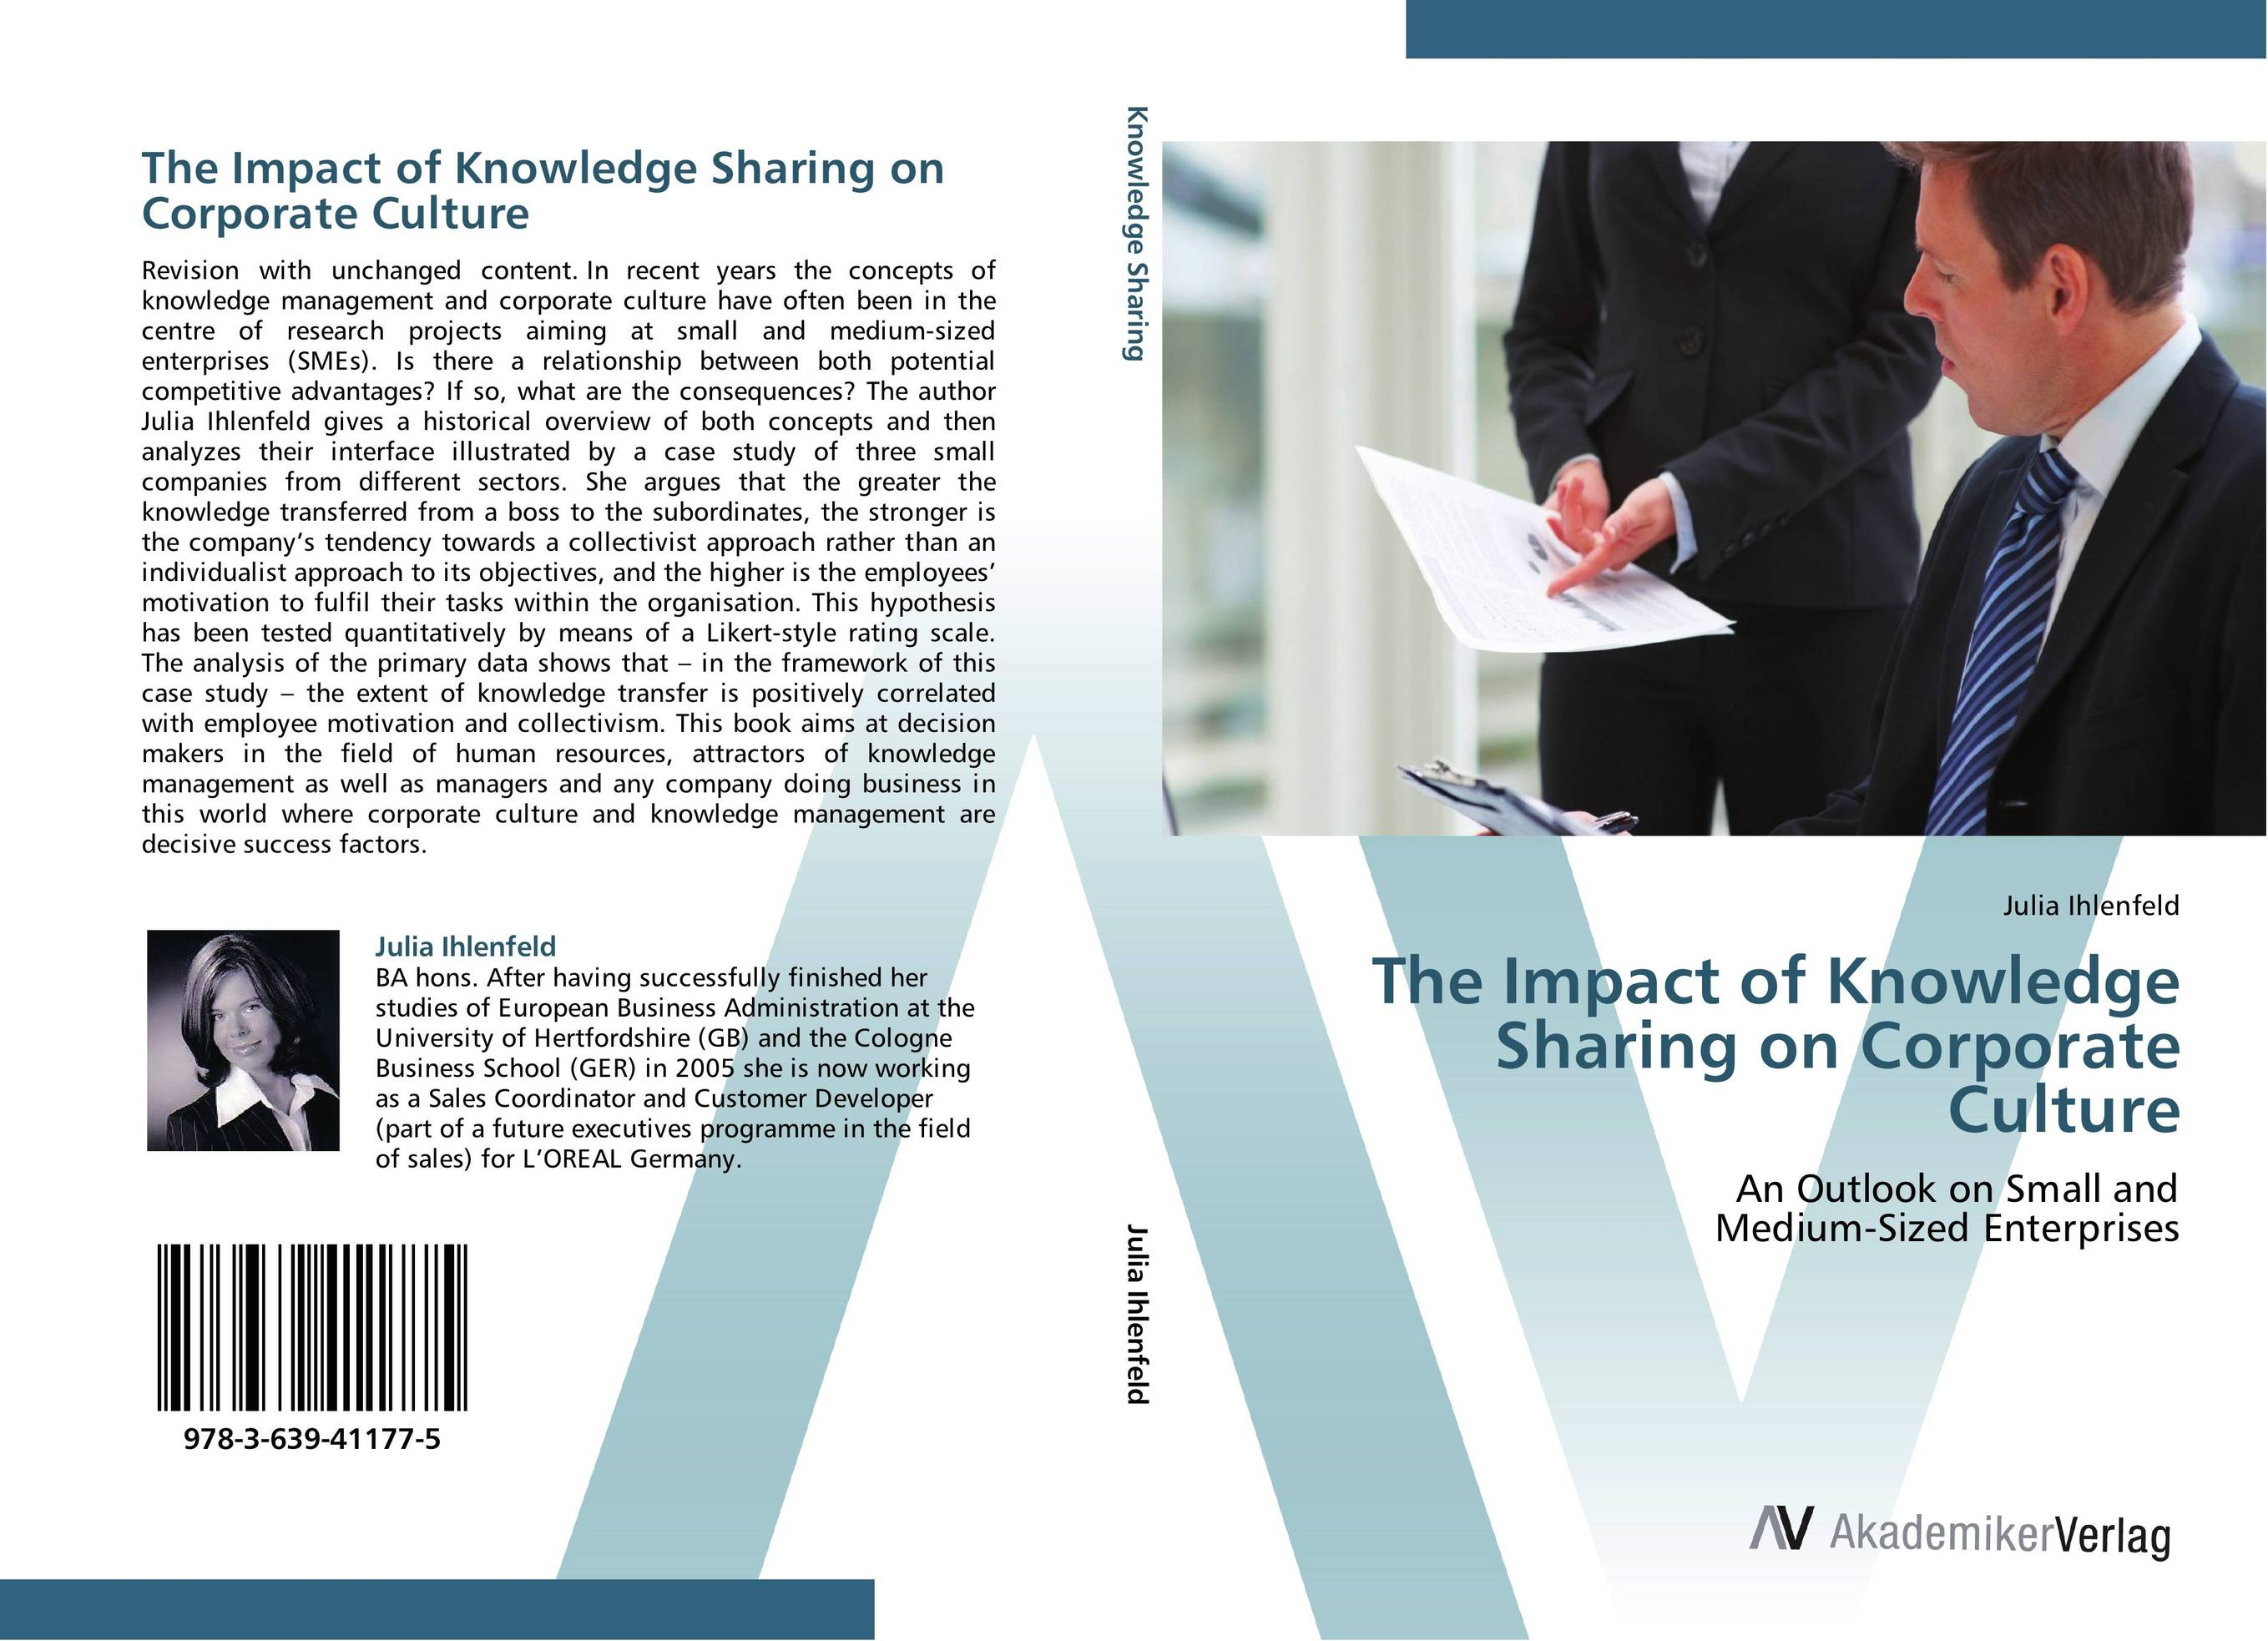 The Impact of Knowledge Sharing on Corporate Culture